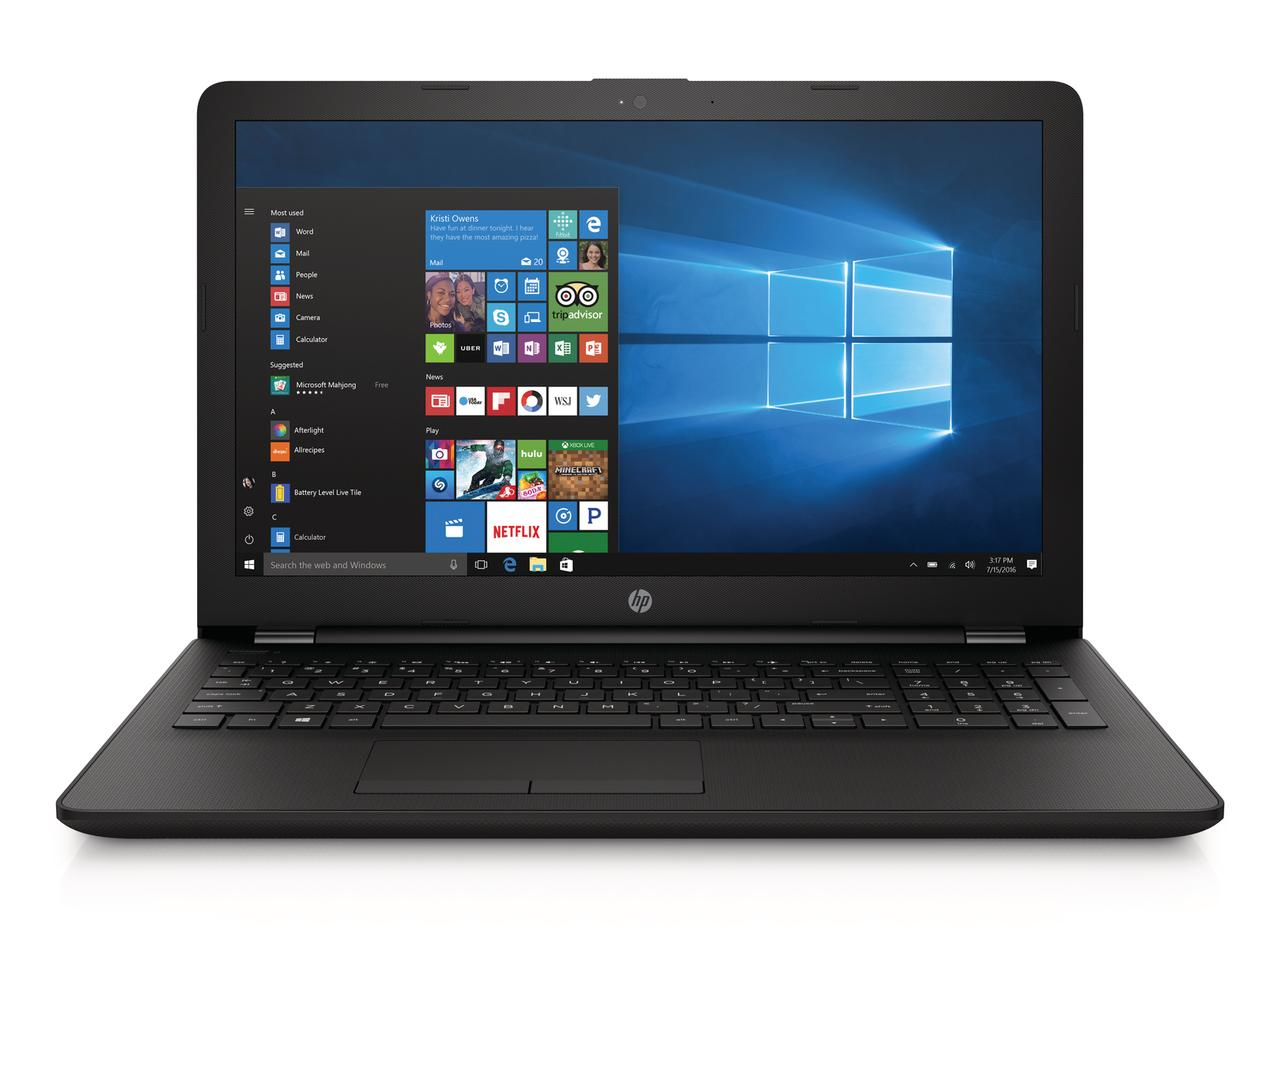 "HP 15-bs212wm 15.6"" Laptop, Windows 10, Intel Celeron N4000 Processor, 4GB Memory, 500GB Hard Drive, DVD,... by HP"